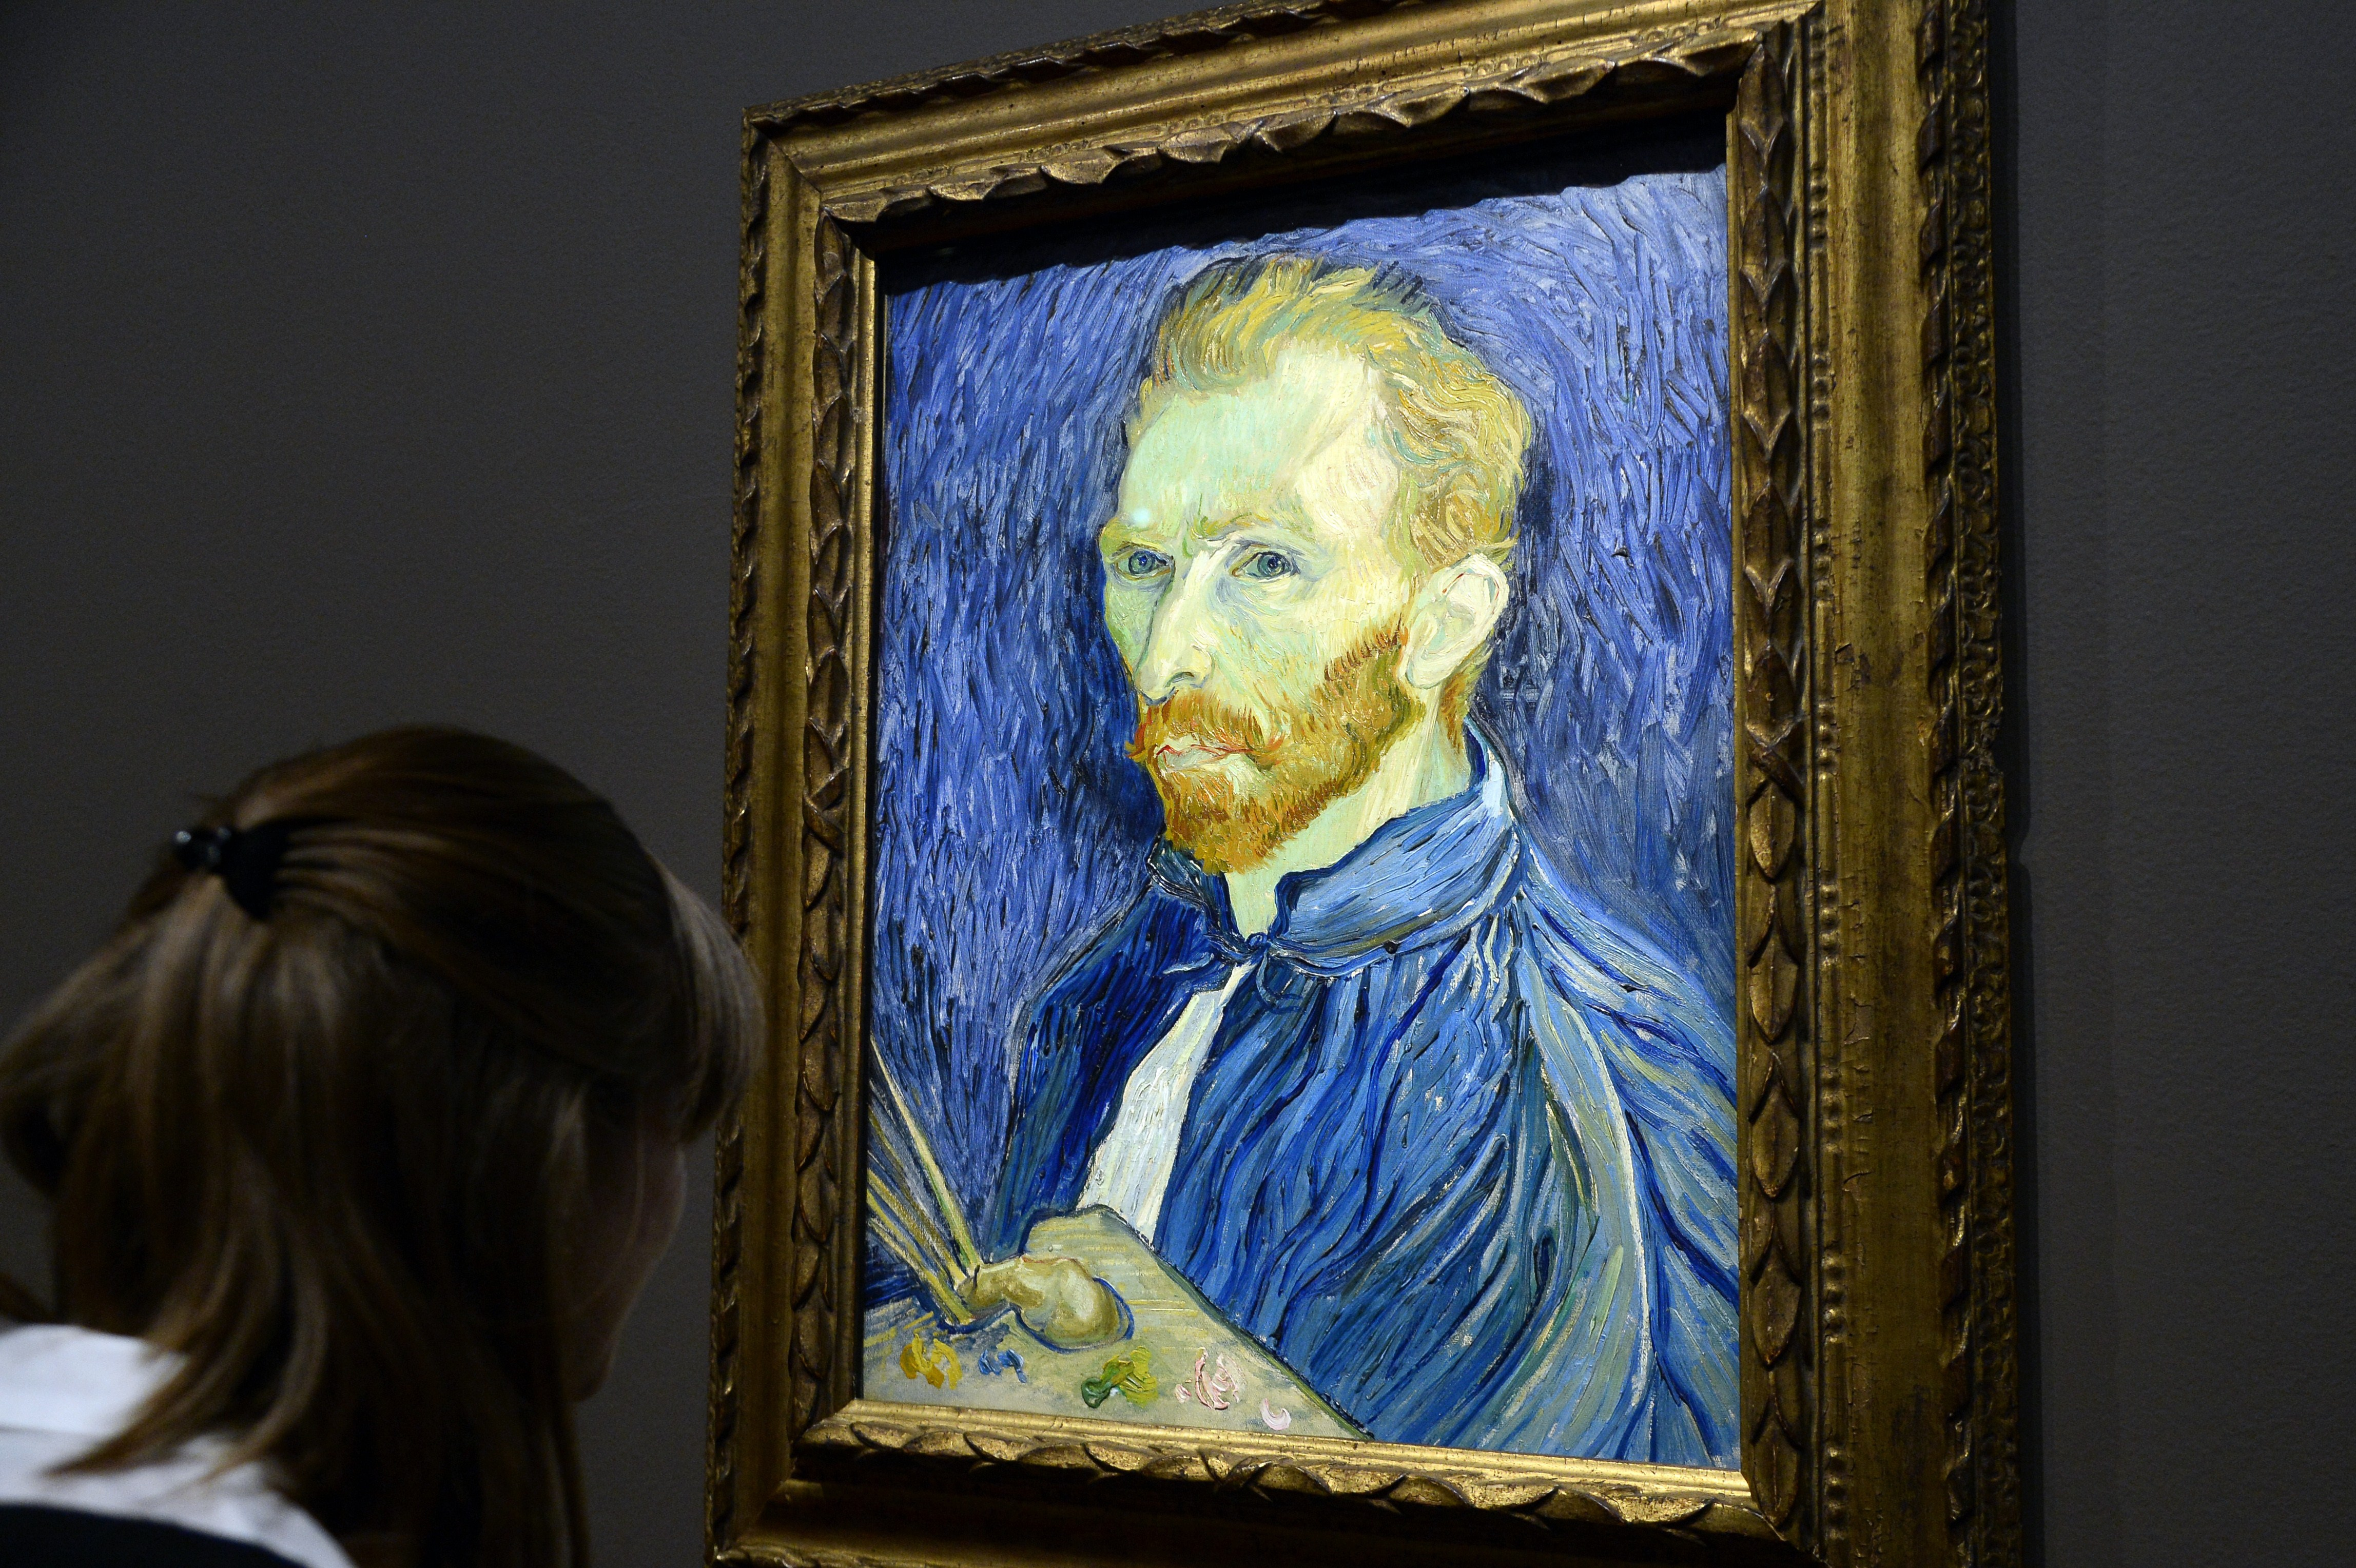 """A visitor looks at a self-portrait by late Dutch painter Vincent Van Gogh displayed at the Orsay Museum as part of the exhibition """"Van Gogh/Artaud. The Man Suicided by Society"""", on March 10, 2014 in Paris. AFP PHOTO / BERTRAND GUAY (Photo credit should read BERTRAND GUAY/AFP/Getty Images)"""